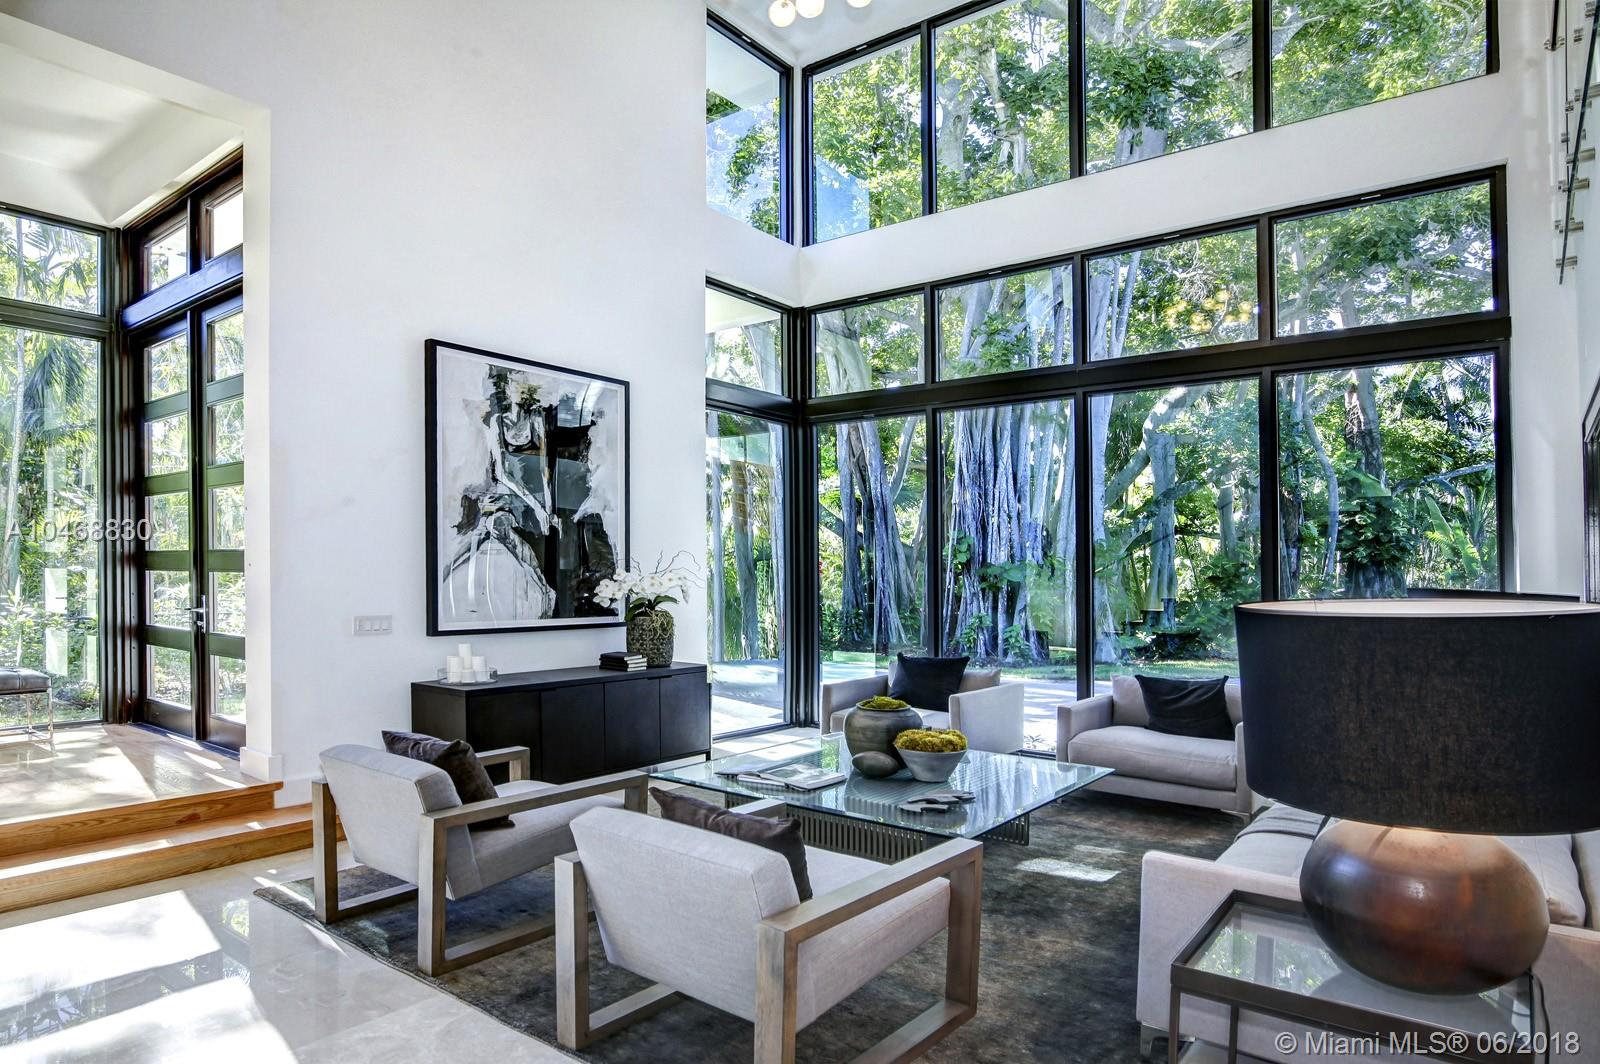 This Brand New Contemporary Masterpiece Is Located On A Tranquil Street Only Minutes From The Center Of Beautiful South Grove And The Shops Of Merrick Park. It Offers A Superb Floor Plan Comprising Six Bedrooms, Seven Full Bathrooms, And A Powder Room. The Property Conveys The Sensibility Of Being Outdoors, Due To Its Floor To Ceiling Windows Overlooking The Lush Landscape Of Coconut Grove. The Interior Space Was Meticulously Designed And Luxuriously Appointed With Marble And Solid Wood Floors. Nowhere Else Can One Experience A Lifestyle Such As This.